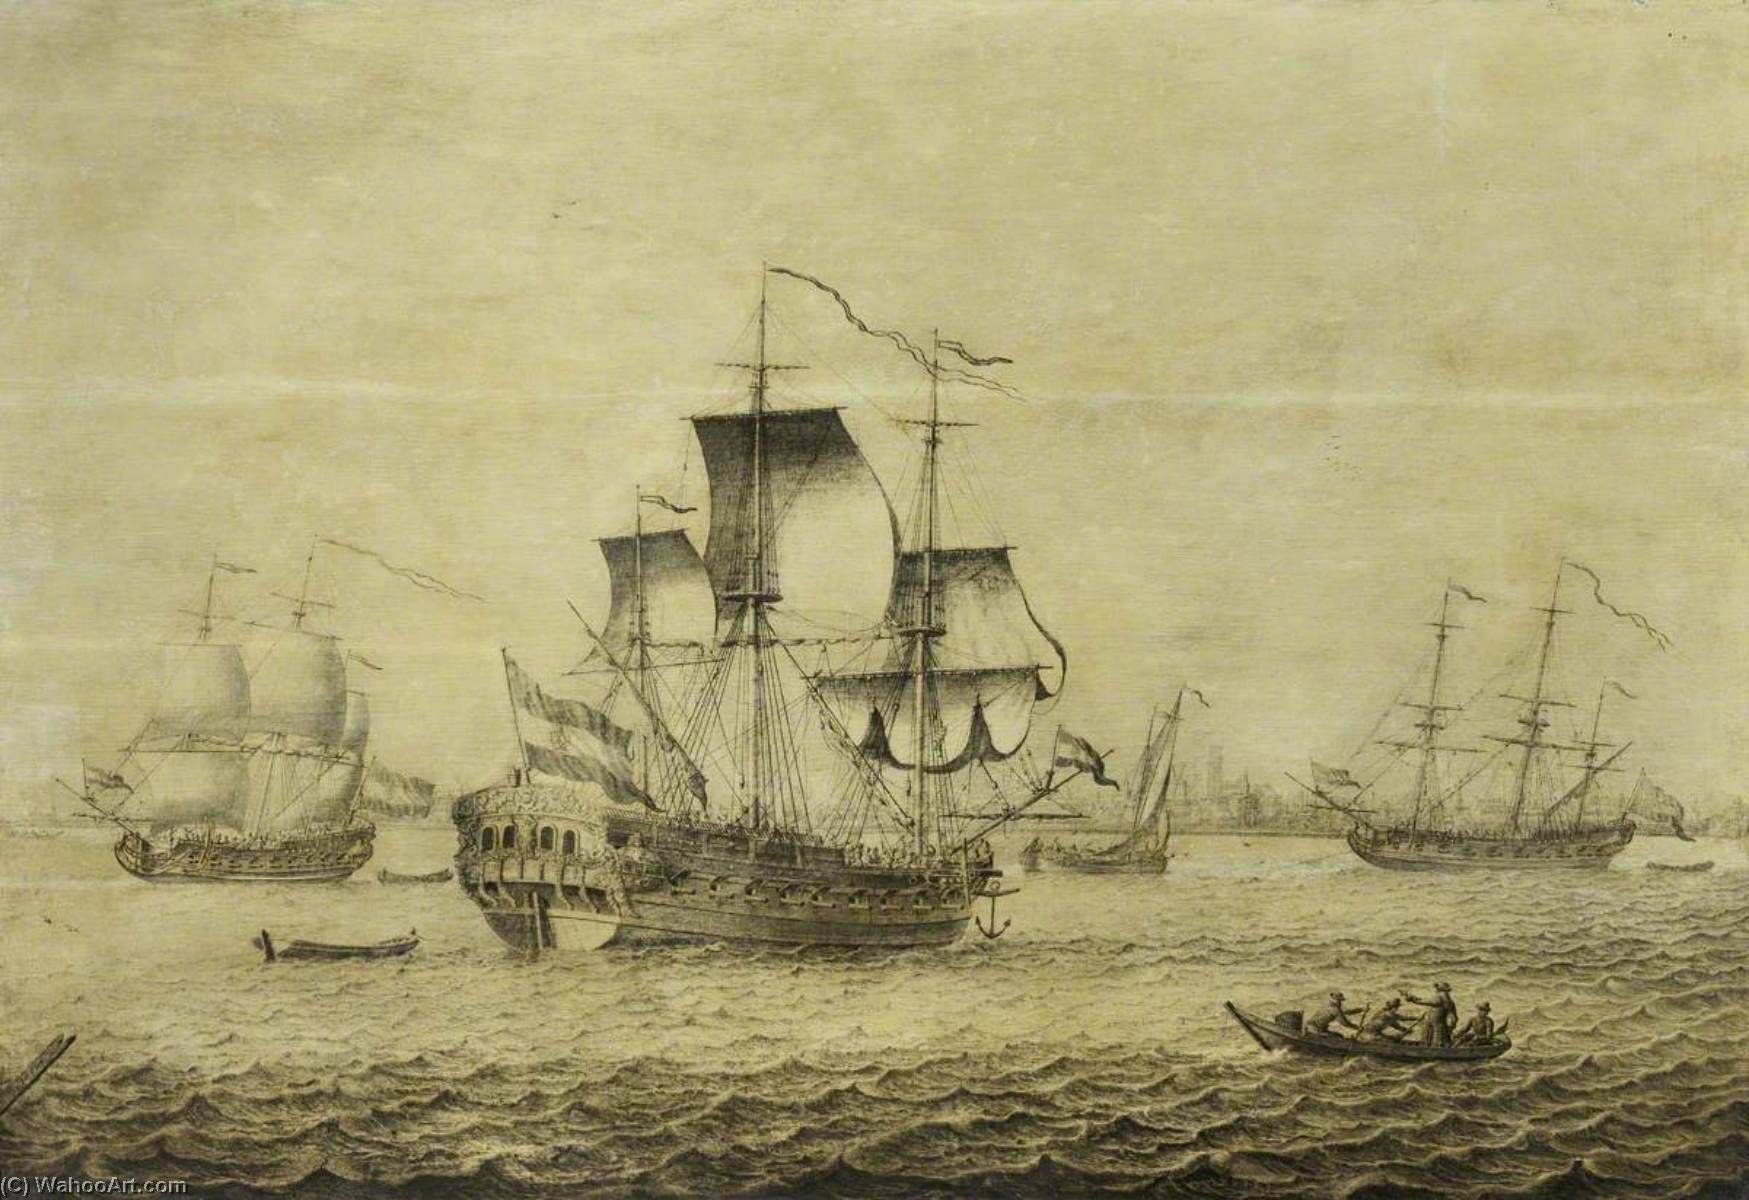 A Dutch Frigate off Rotterdam by Adriaen Van Salm | Art Reproduction | WahooArt.com